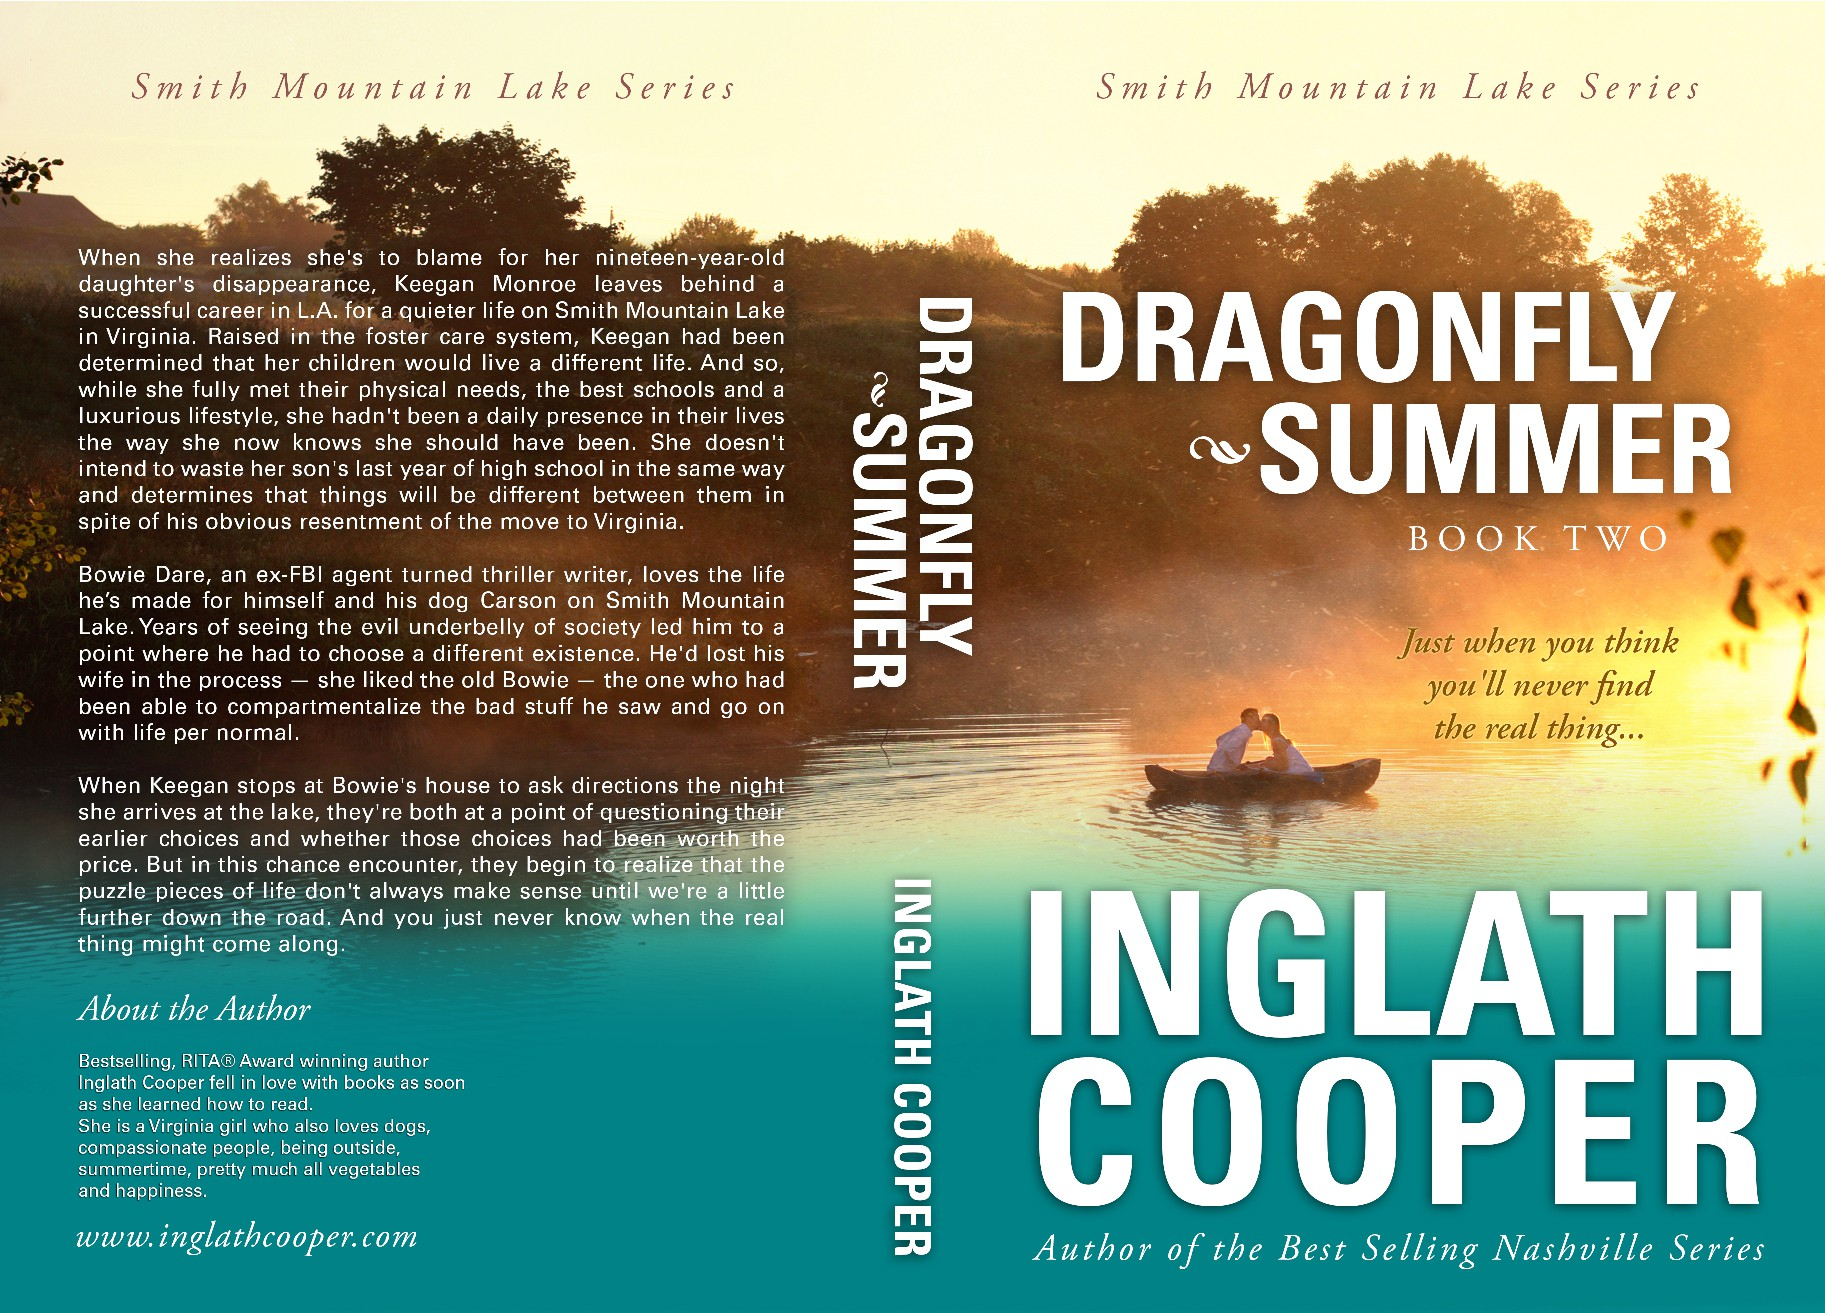 Dragonfly Summer Book Cover - upscale women's fiction/romance